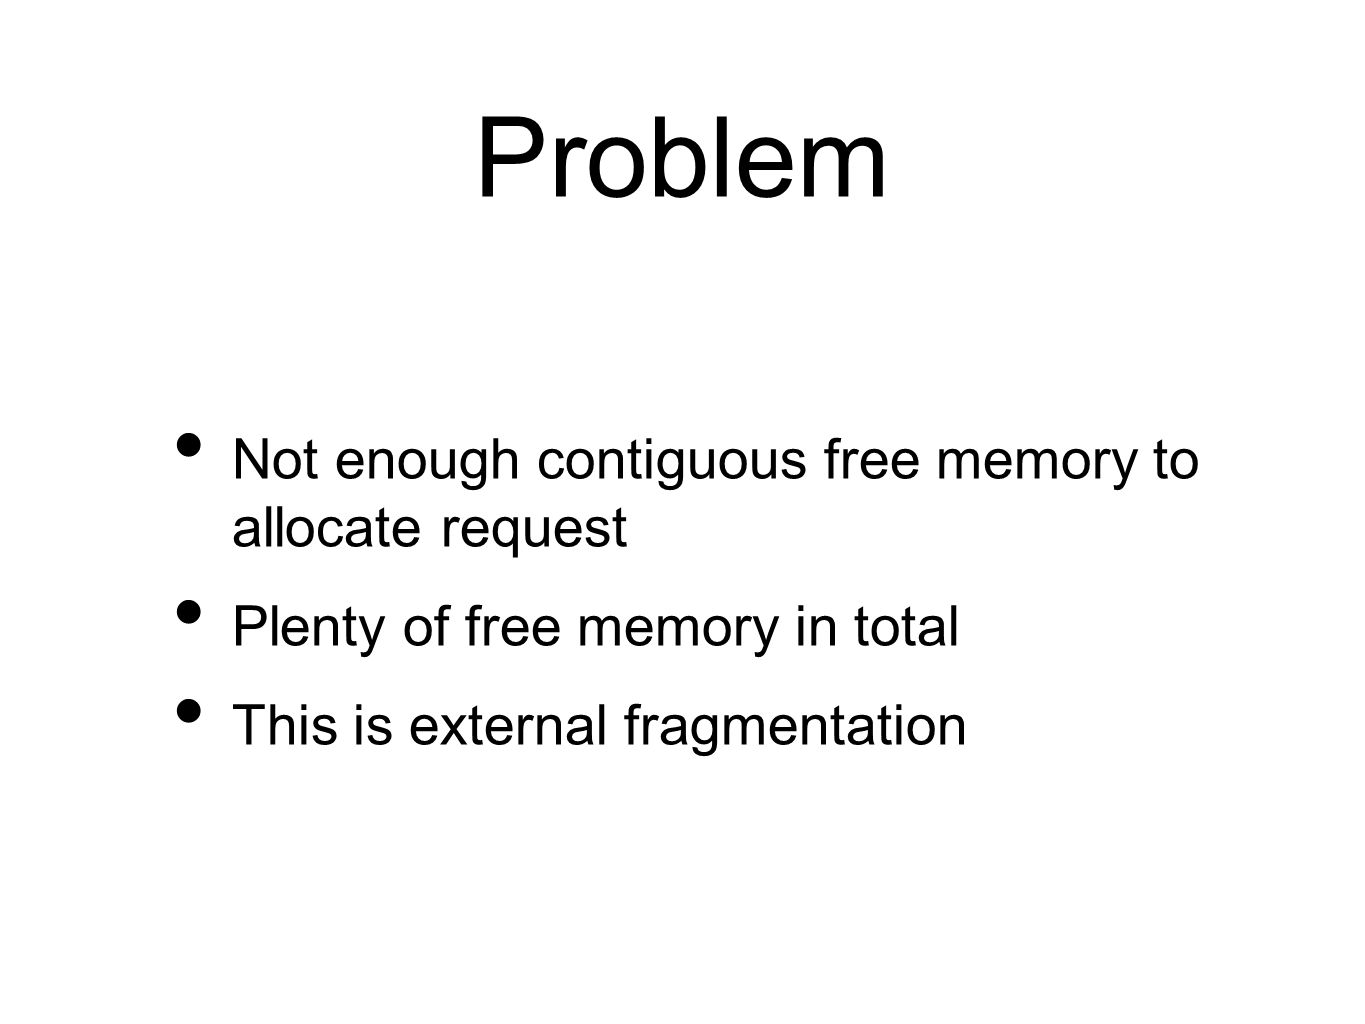 Problem Not enough contiguous free memory to allocate request Plenty of free memory in total This is external fragmentation